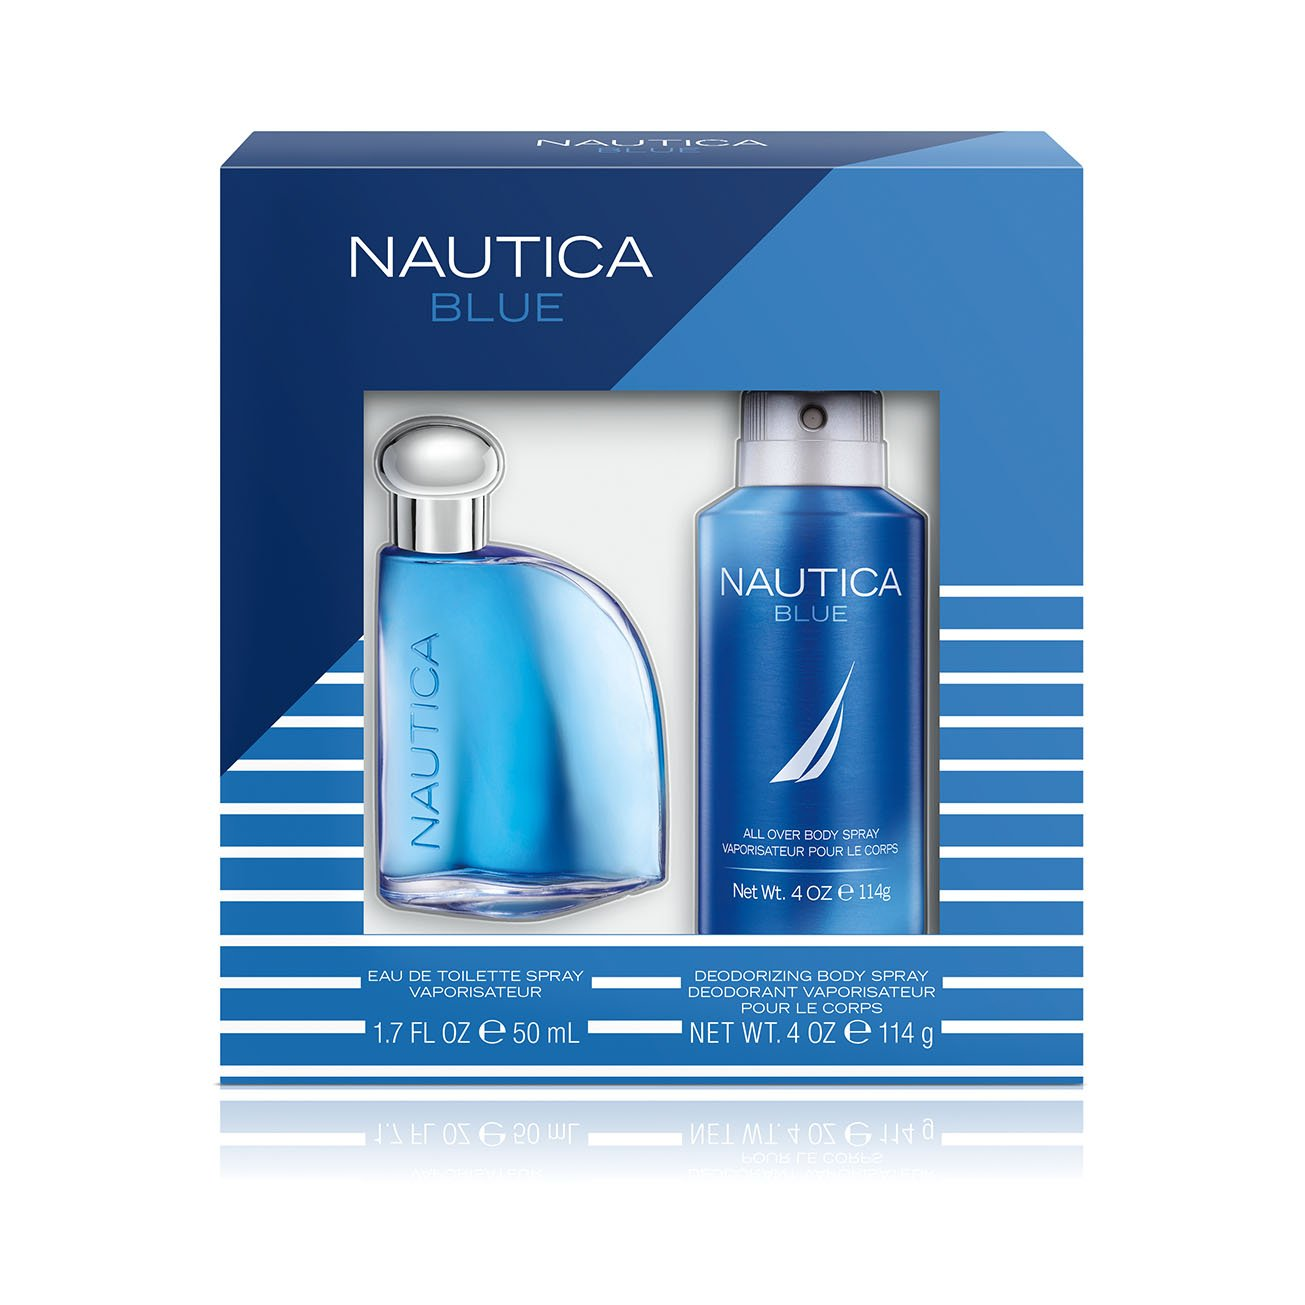 Nautica Blue, Men s Fragrance, 2 Piece Set, 1.7 oz. Eau de Toilette, 4.0 oz. Deodorizing Body Spray, Classic Scents, Great Gift Set